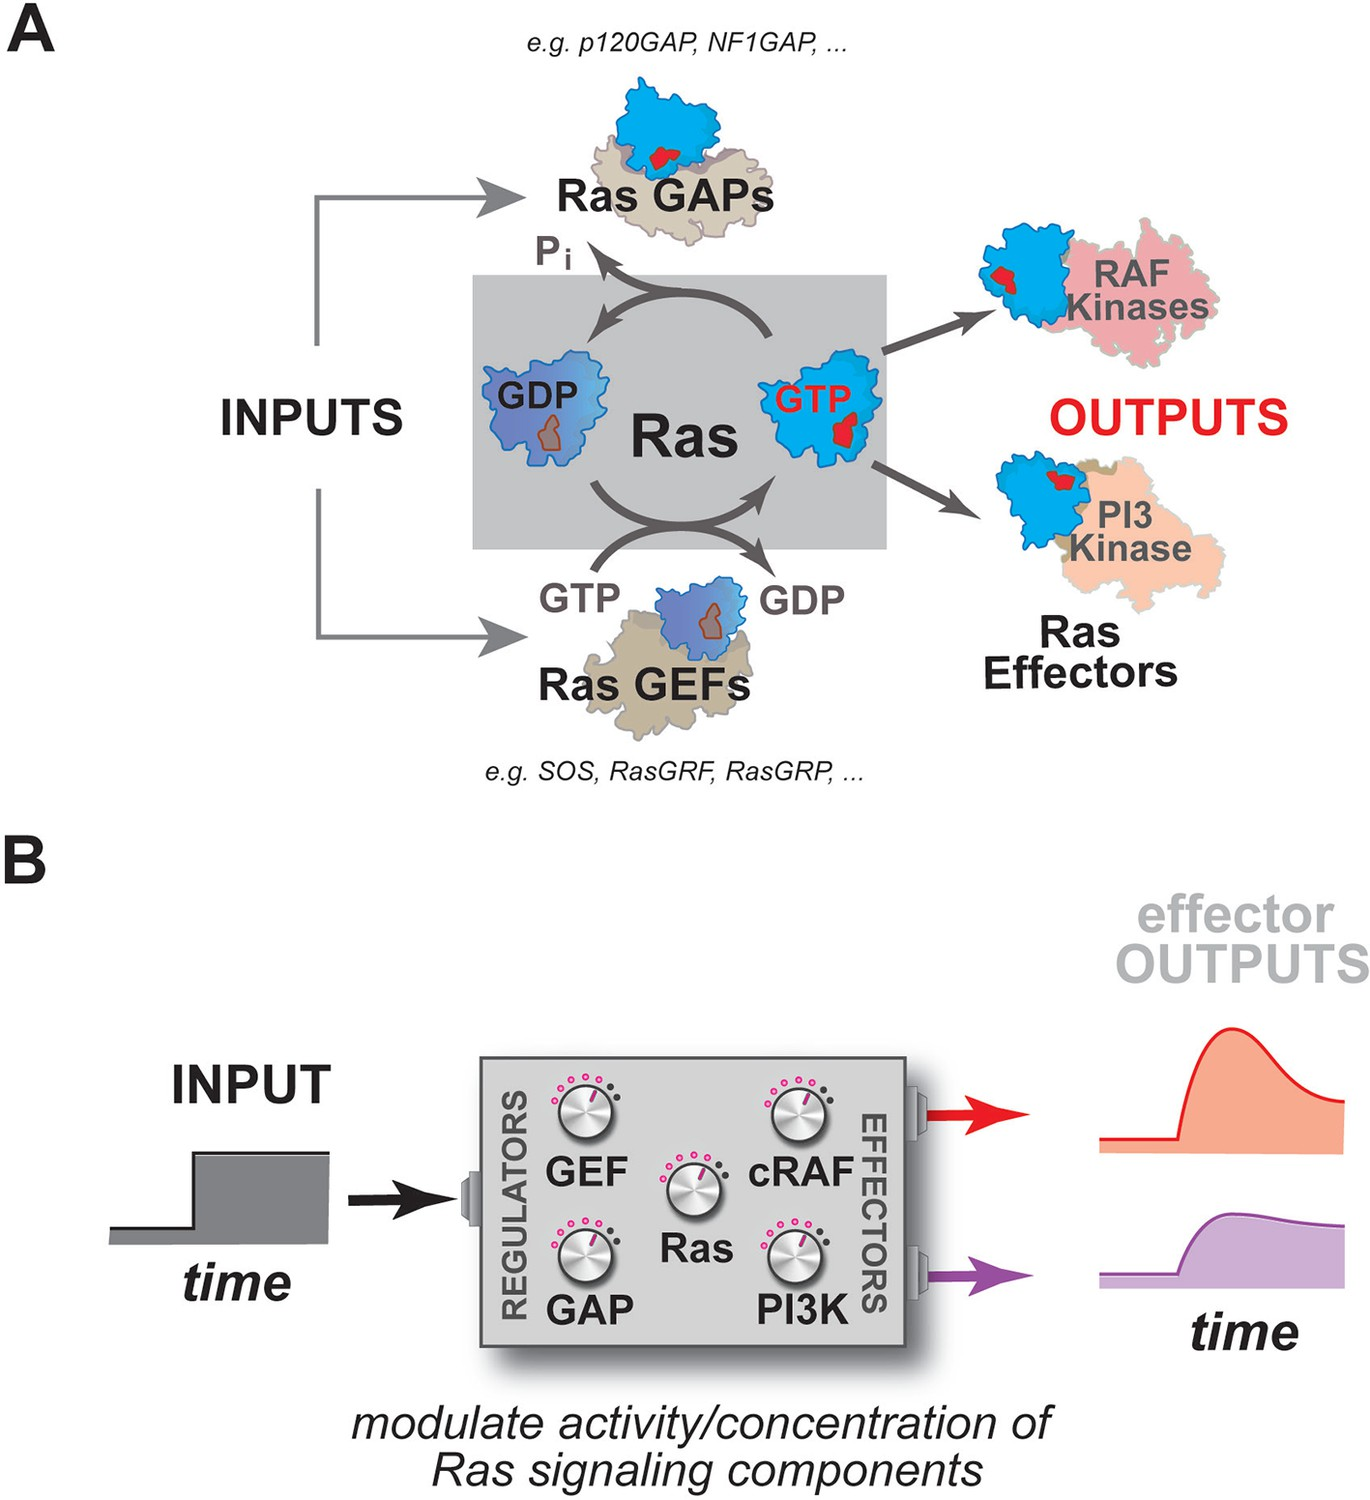 Ras Mapping The Functional Versatility And Fragility Of Ras Gtpase